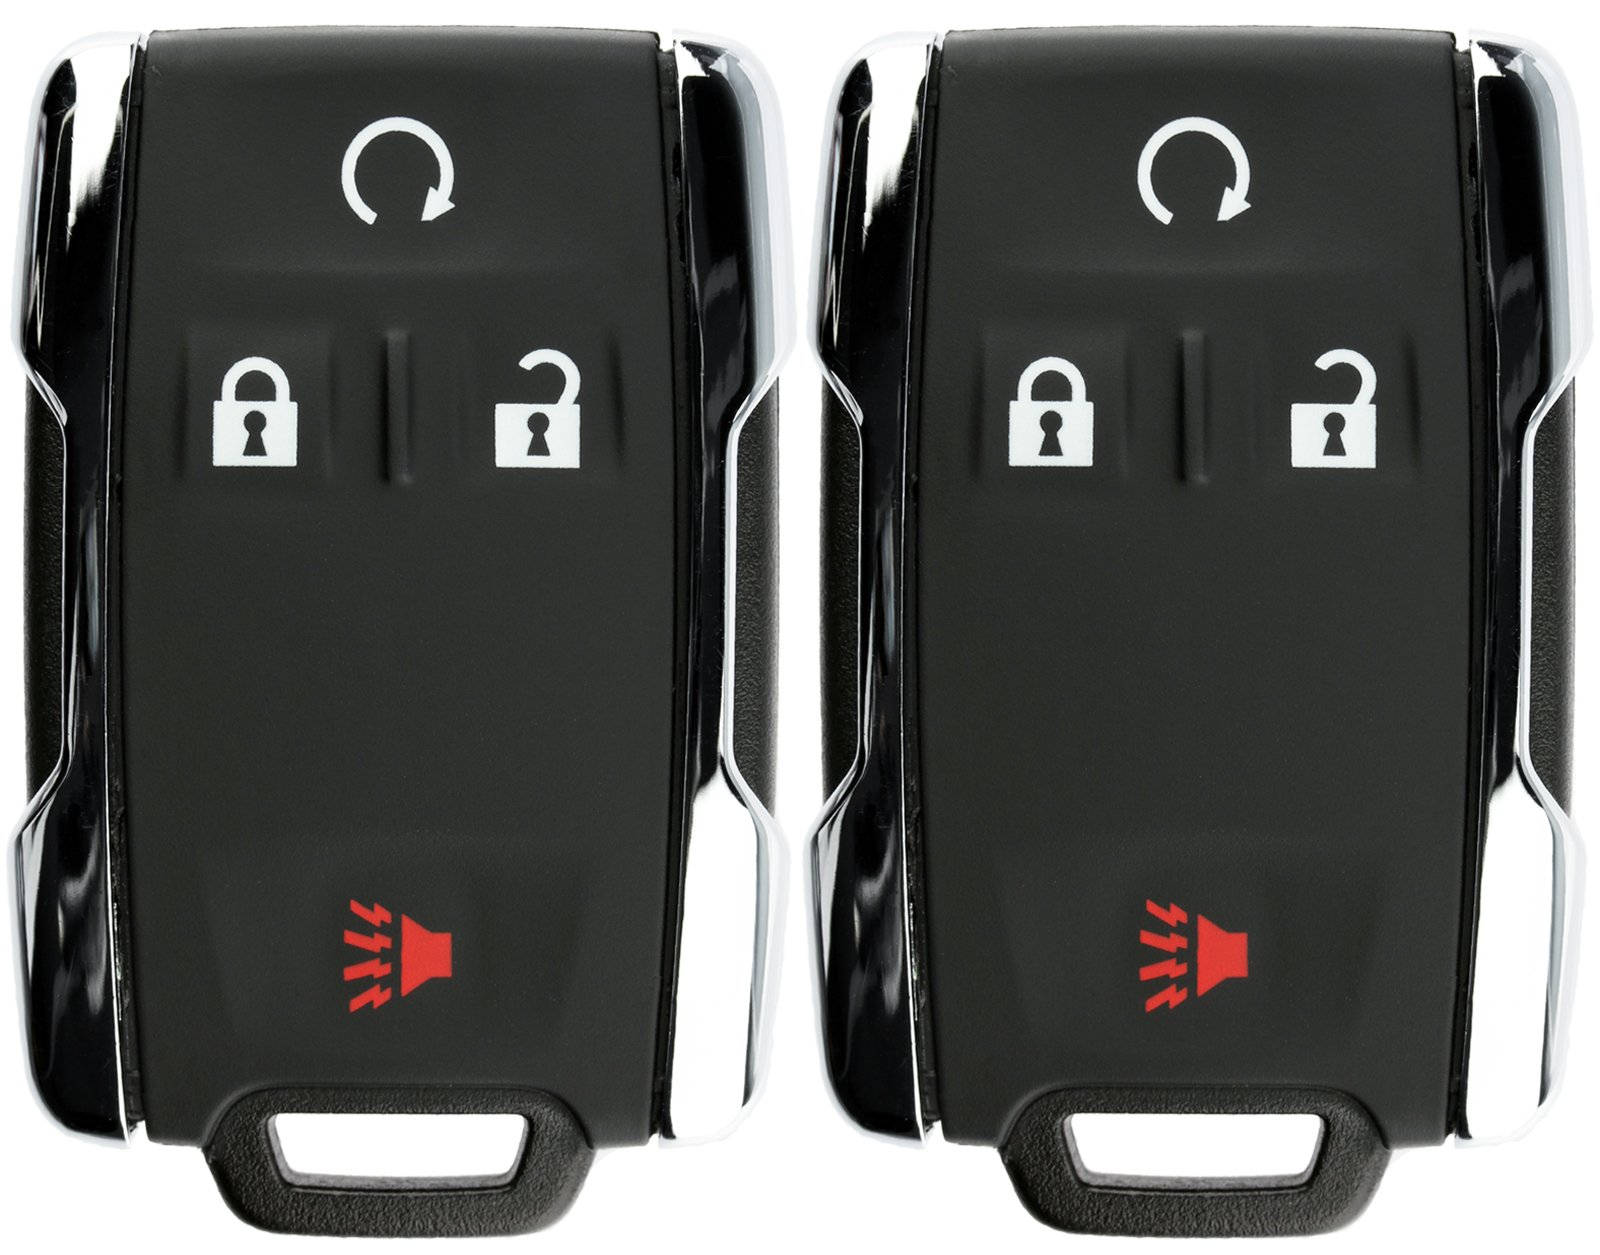 KeylessOption Keyless Entry Remote Control Car Key Fob Replacement for Chevy GMC M3N-32337100 (Pack of 2)